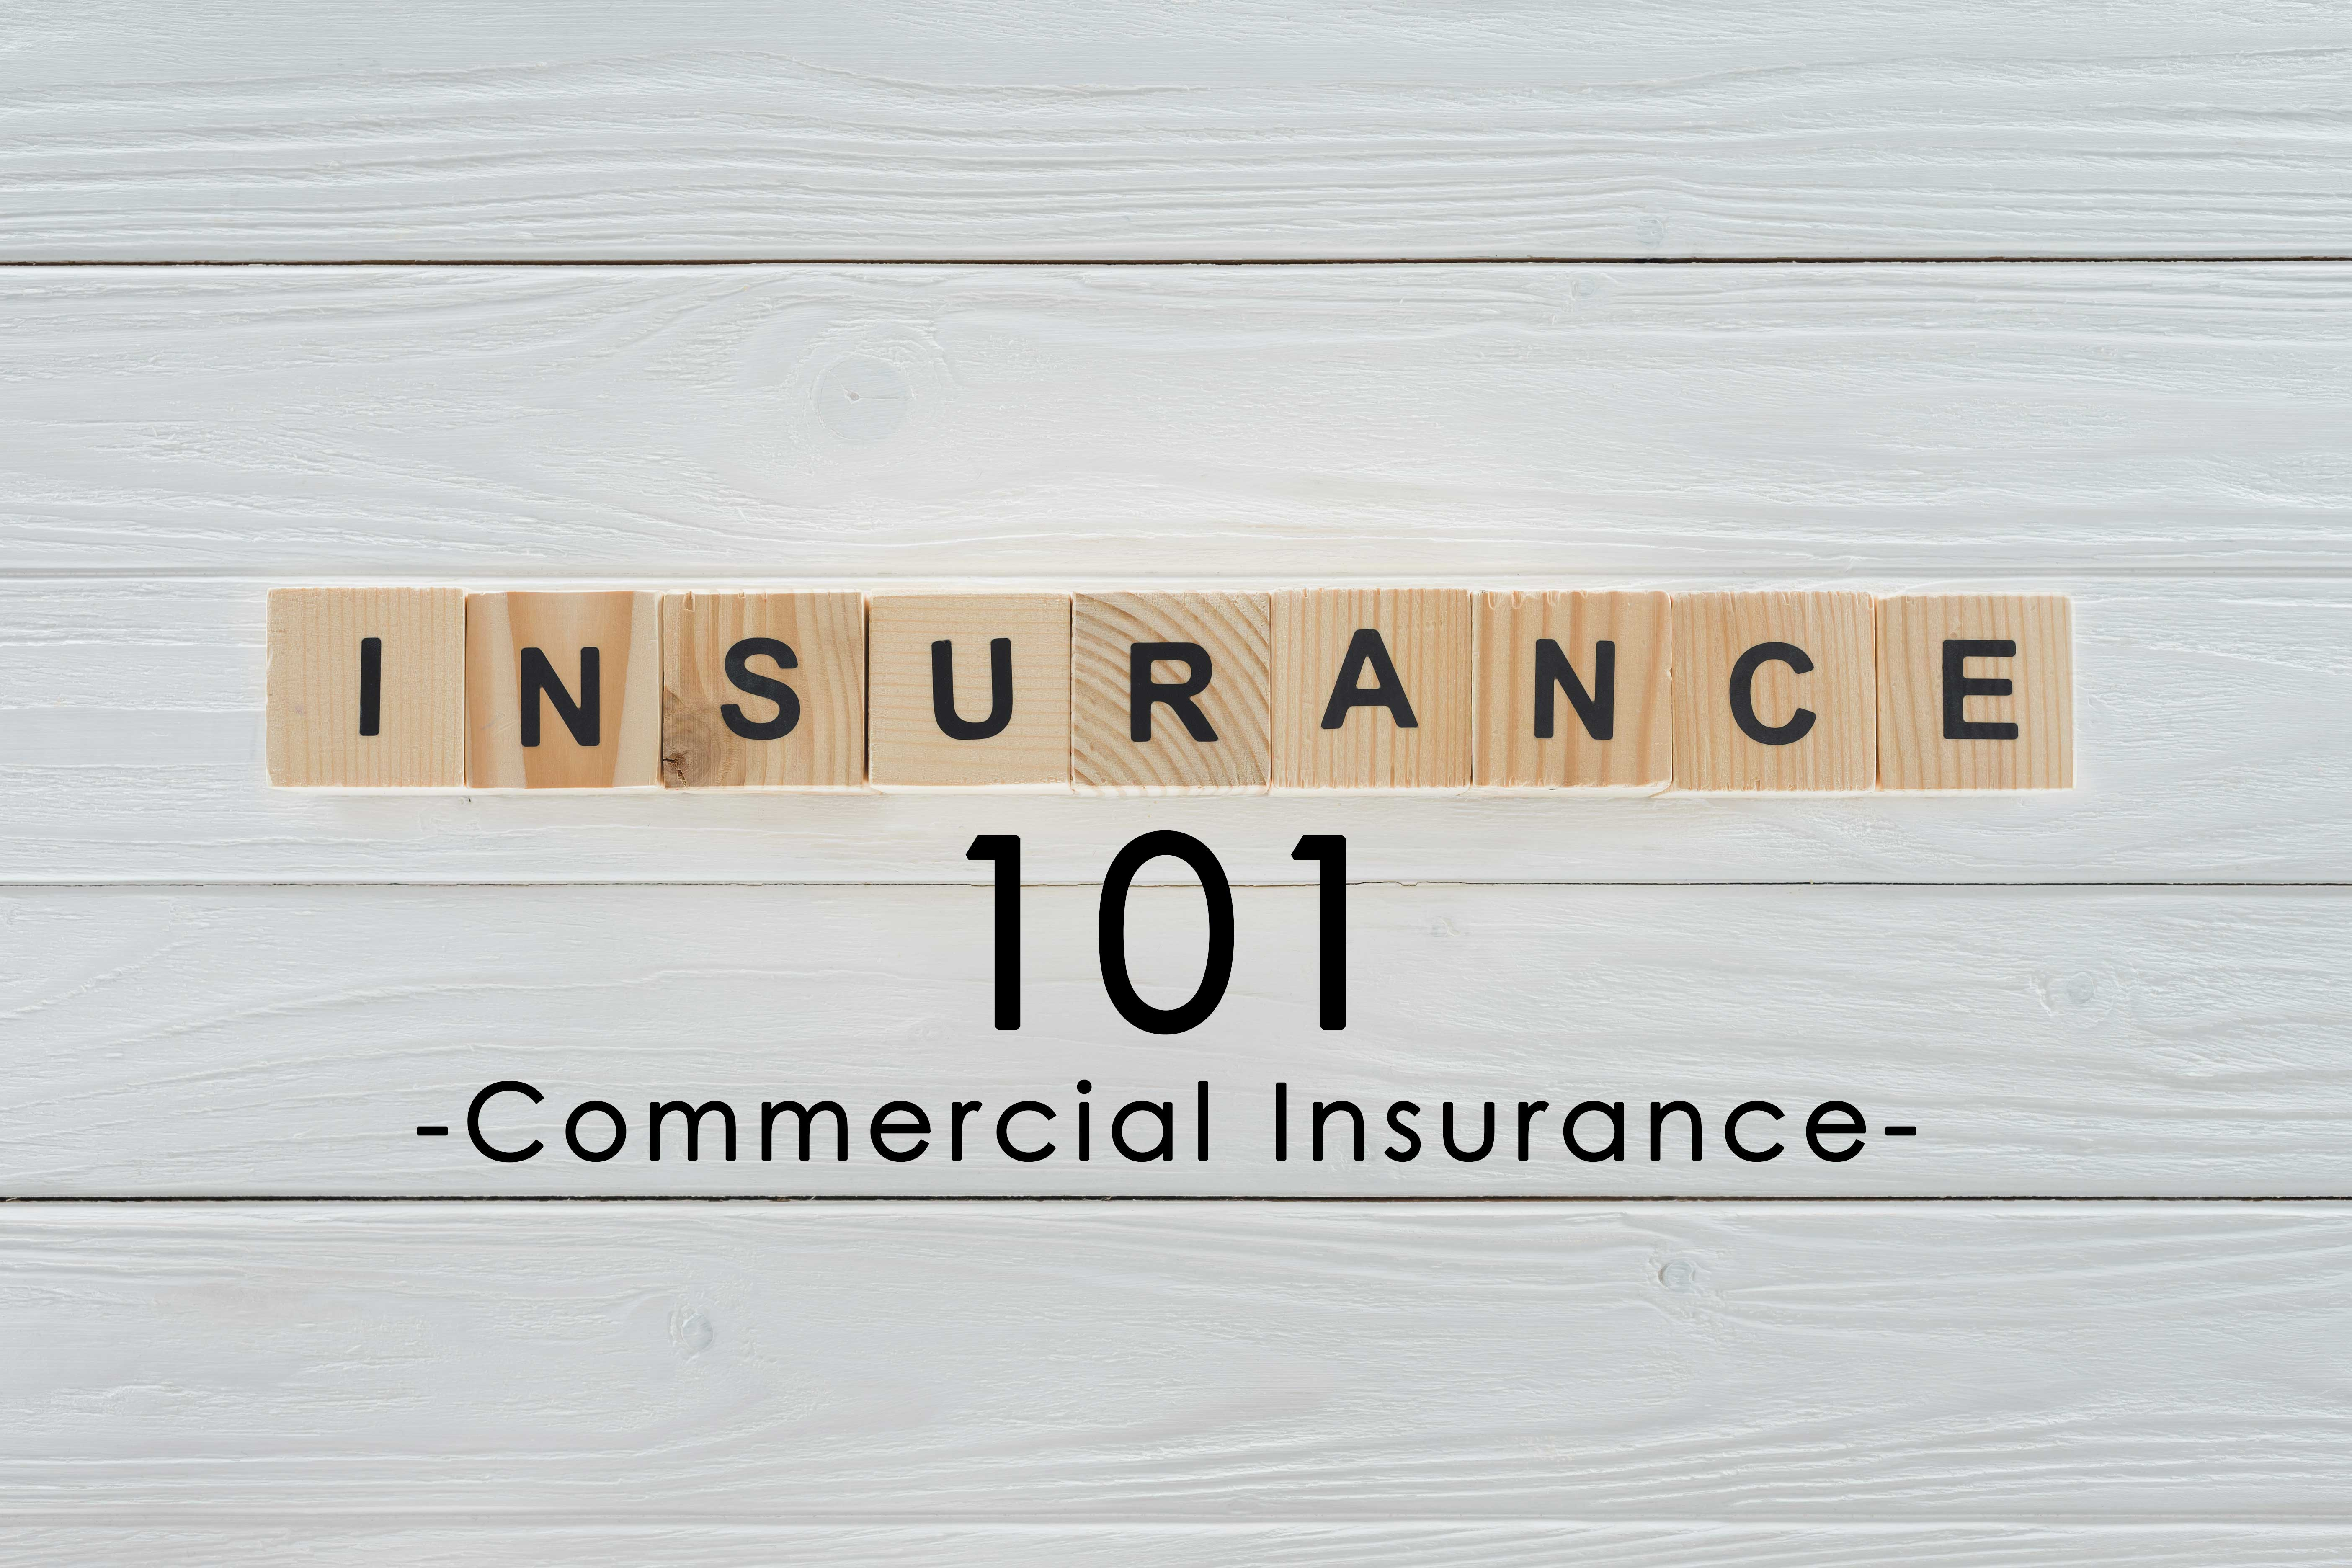 Insurance Term of the Day - Commercial Insurance